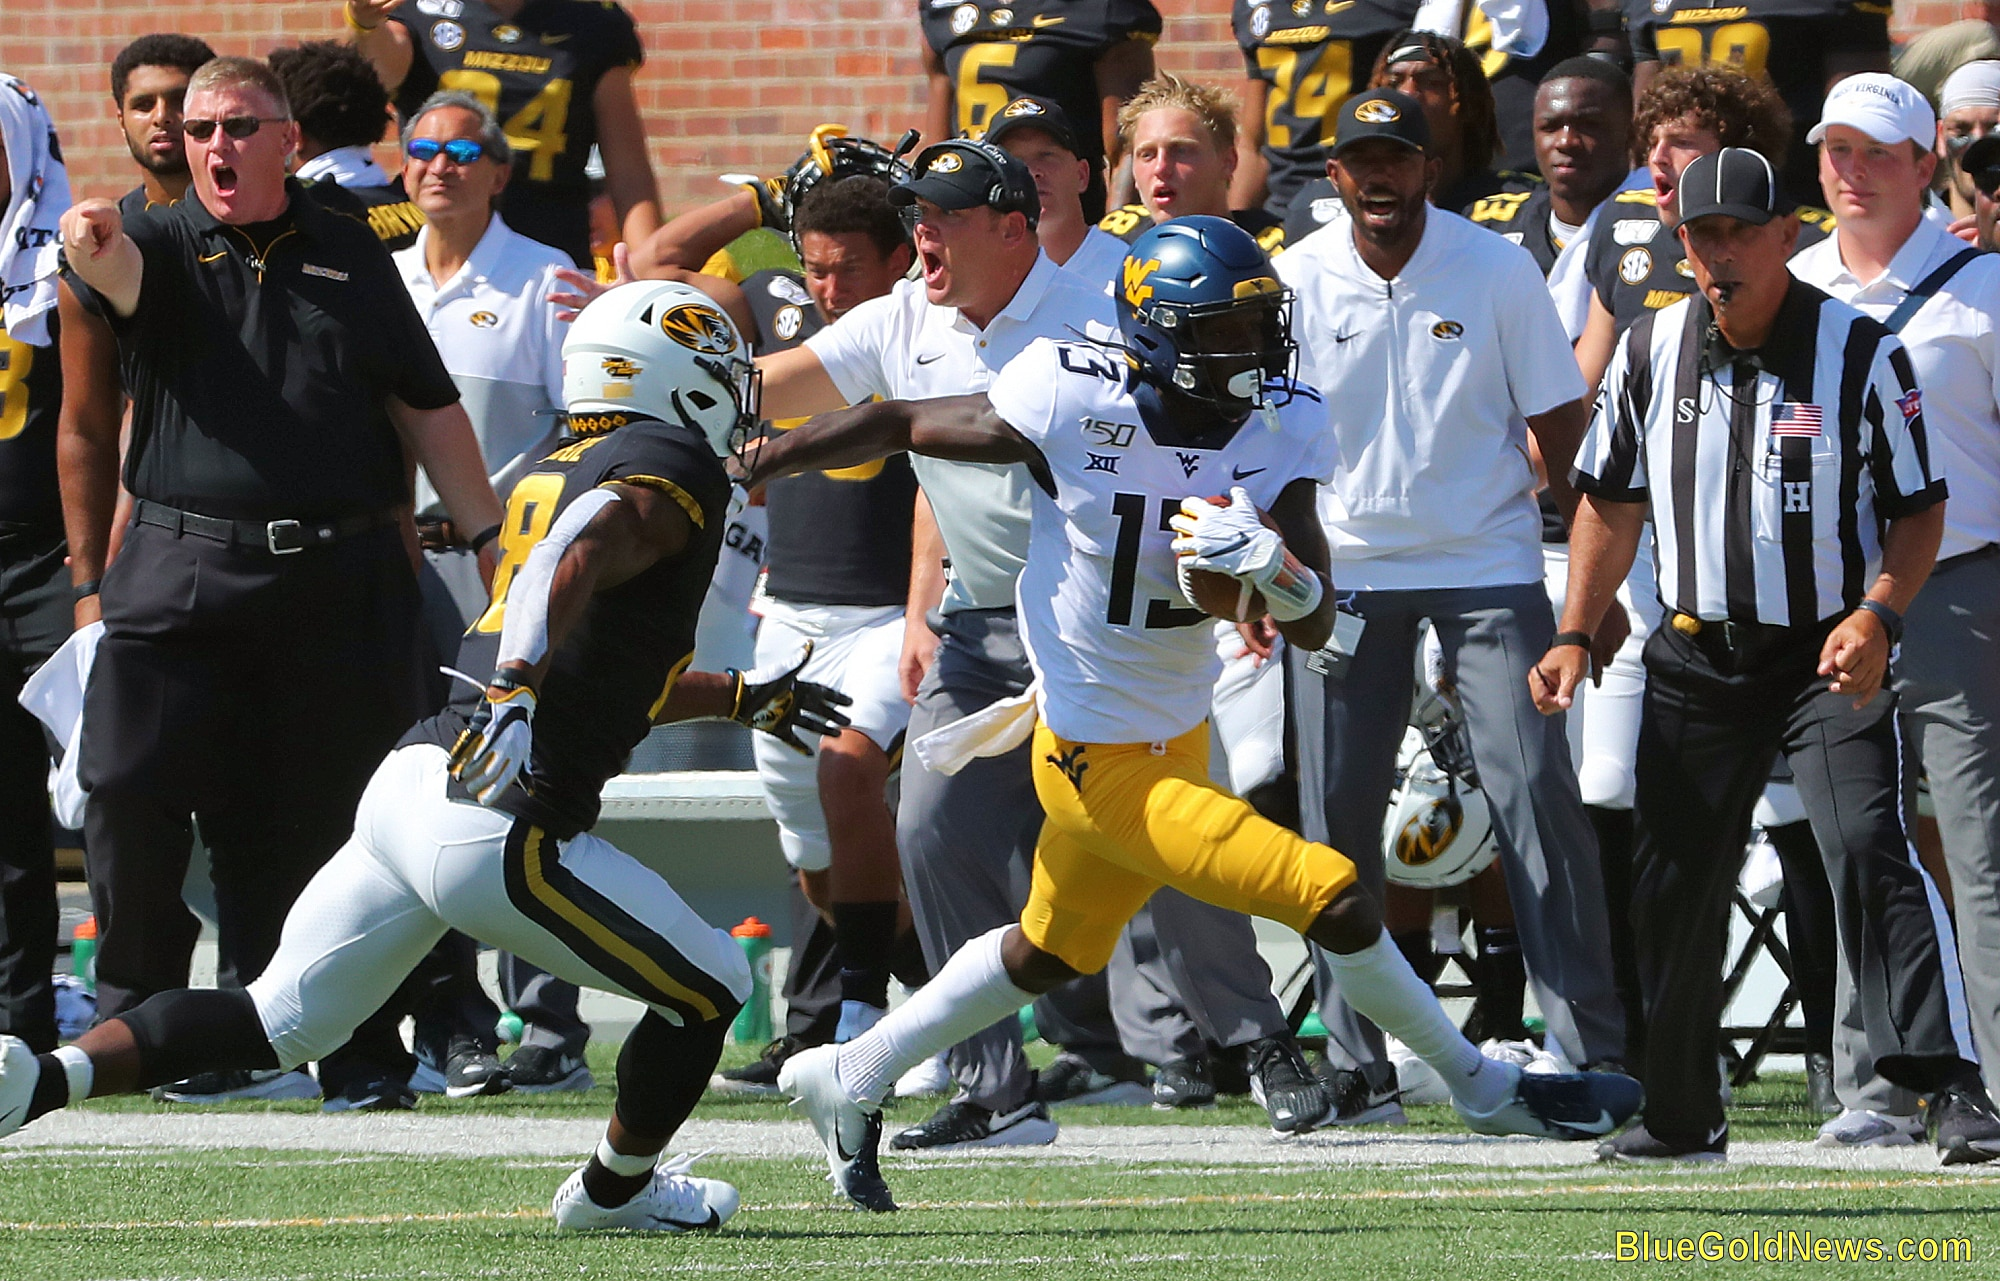 West Virginia wide receiver Sam James (13) gains yaradge as the Missouri sideline erupts in protest